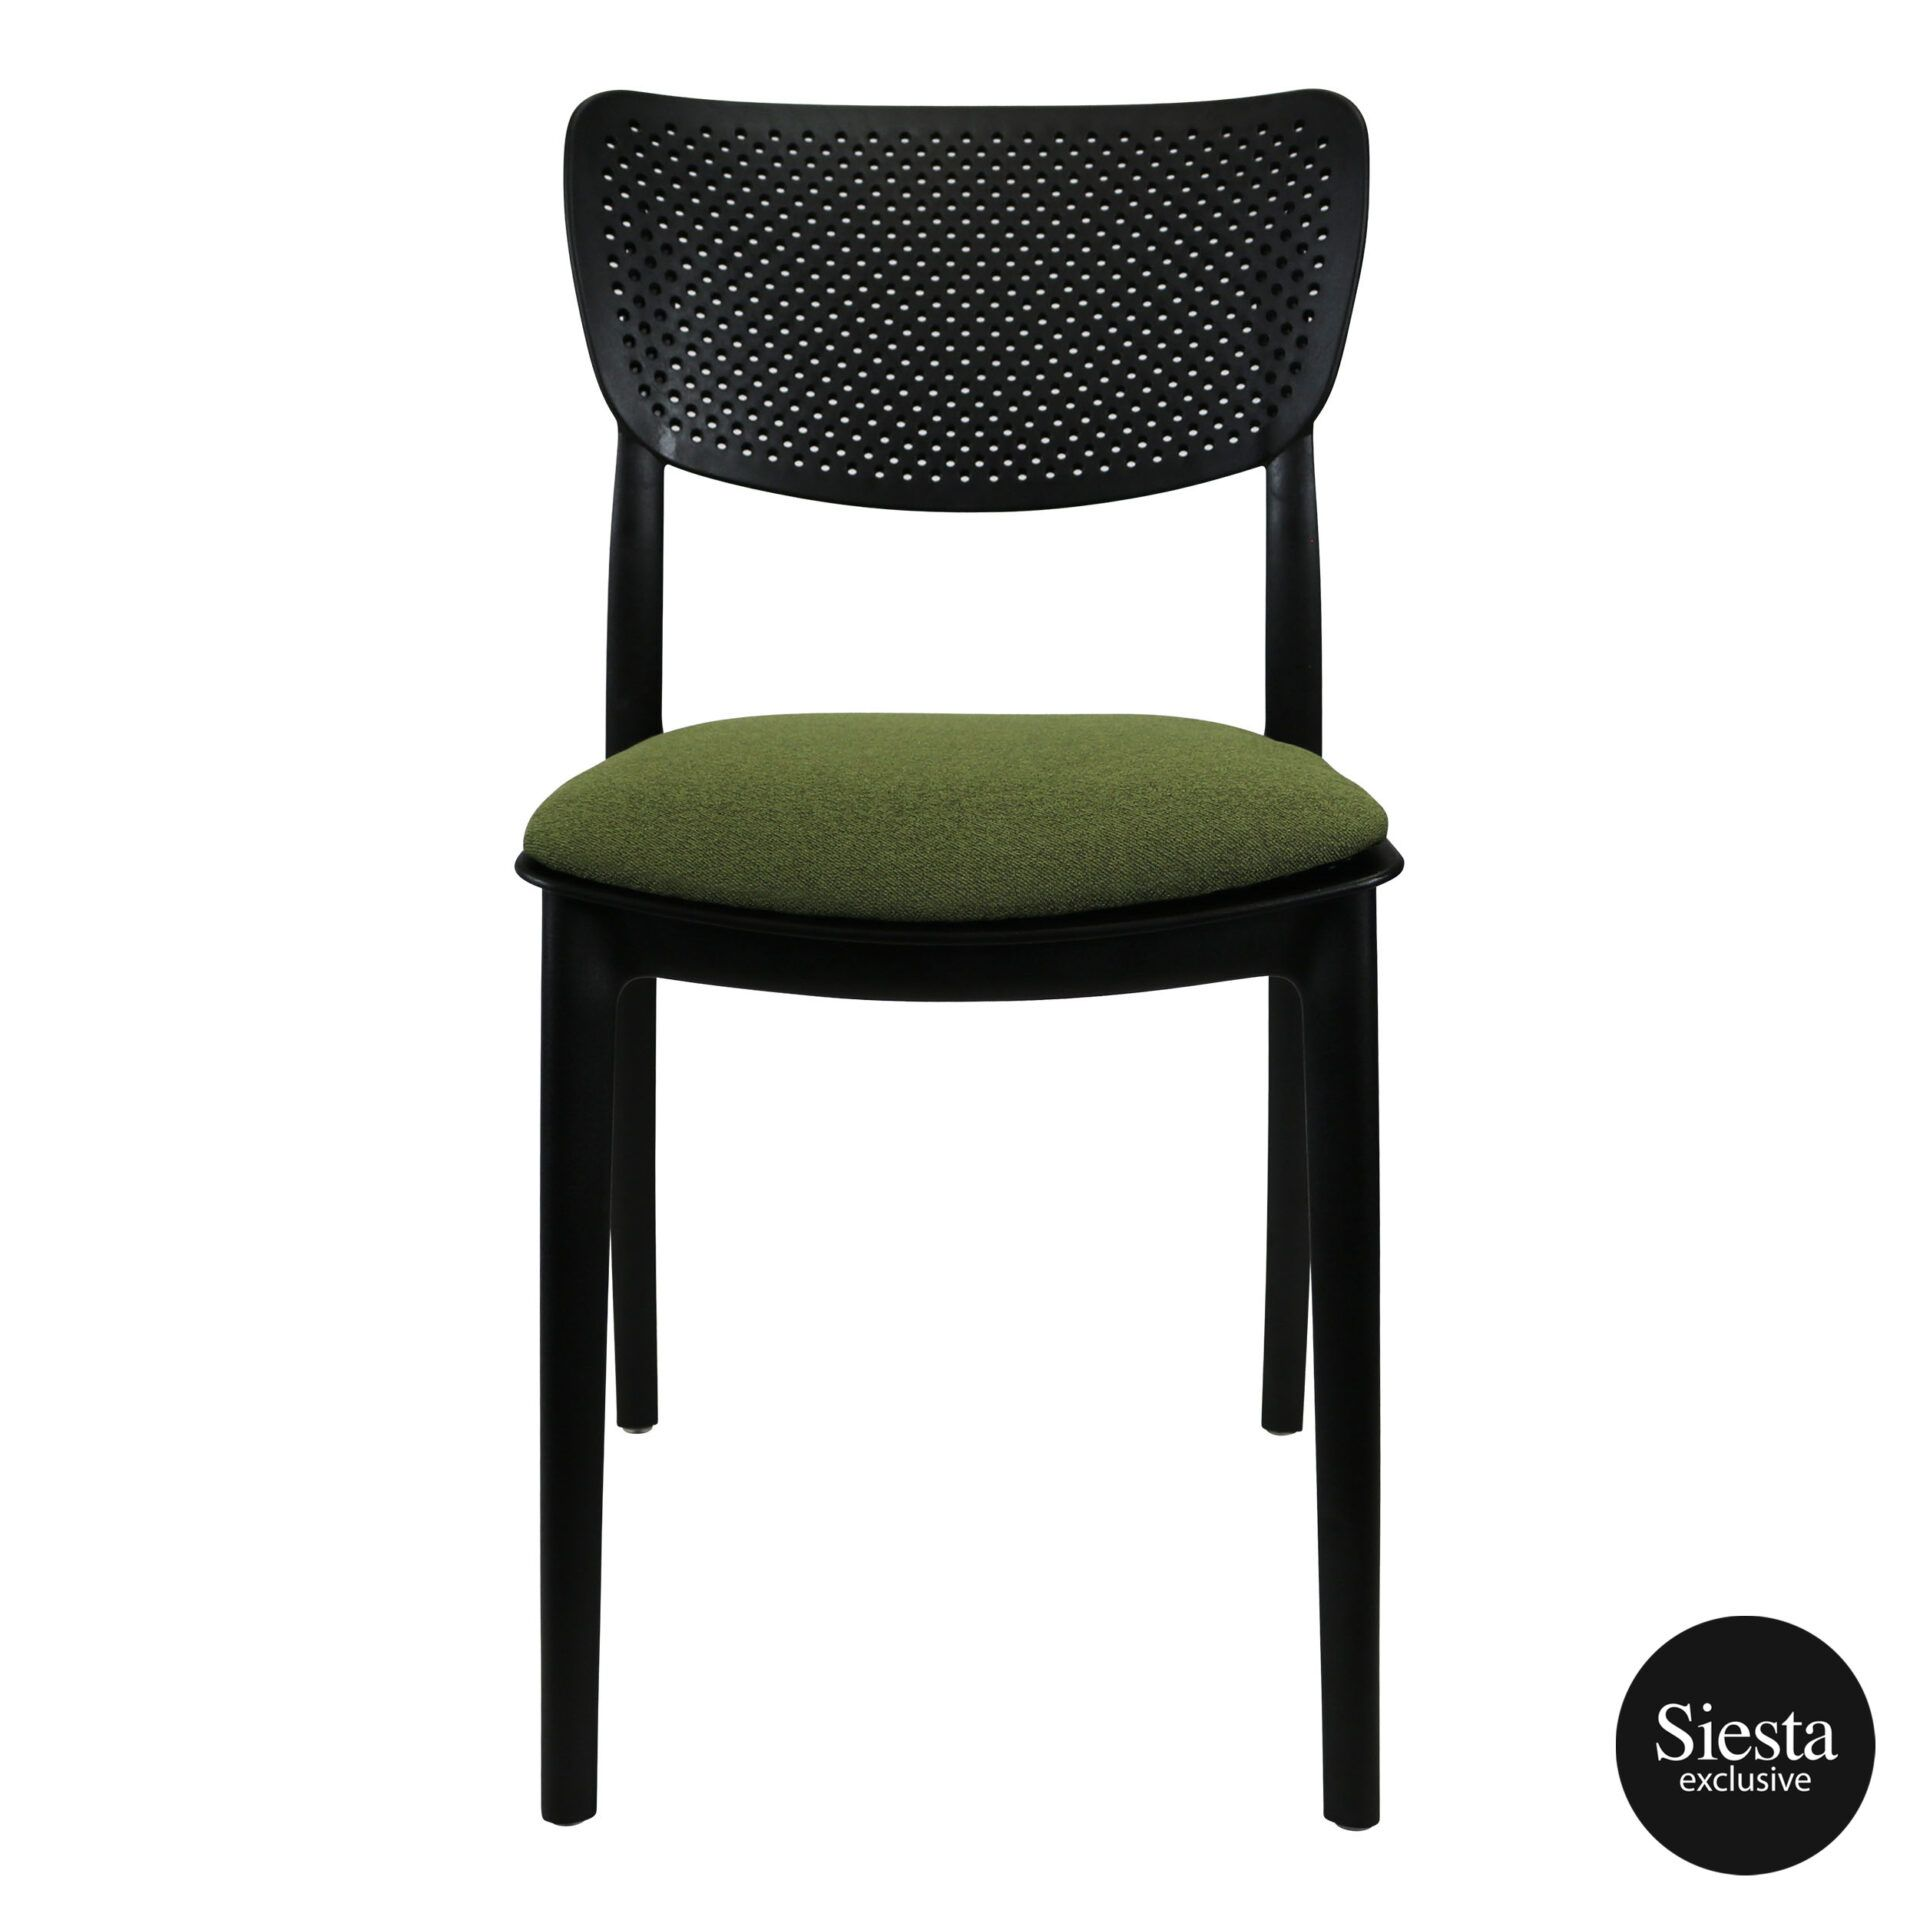 lucy chair black c4